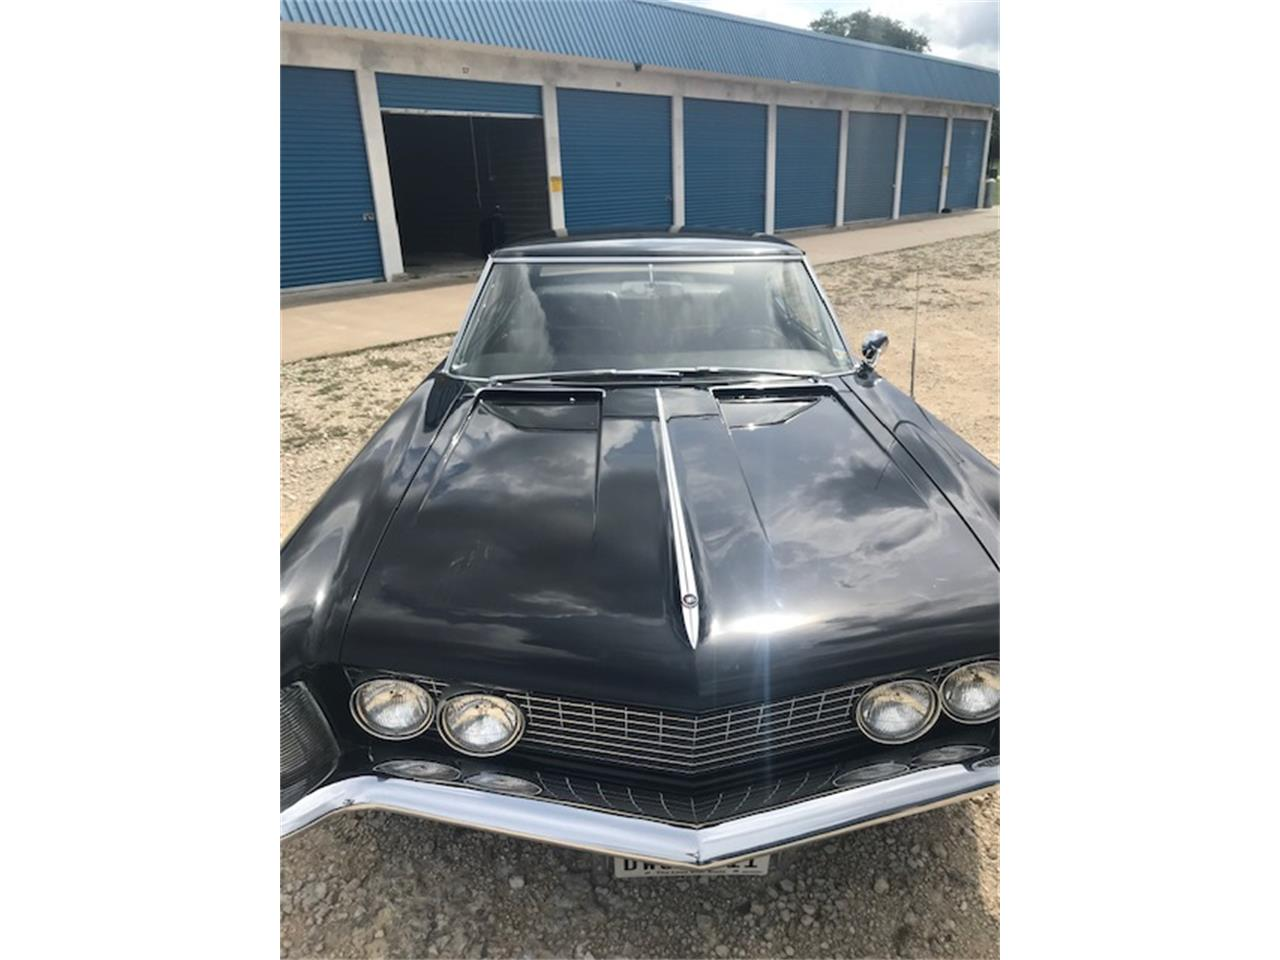 Large Picture of Classic '63 Buick Riviera located in Austin Texas - $25,000.00 Offered by a Private Seller - Q8L8